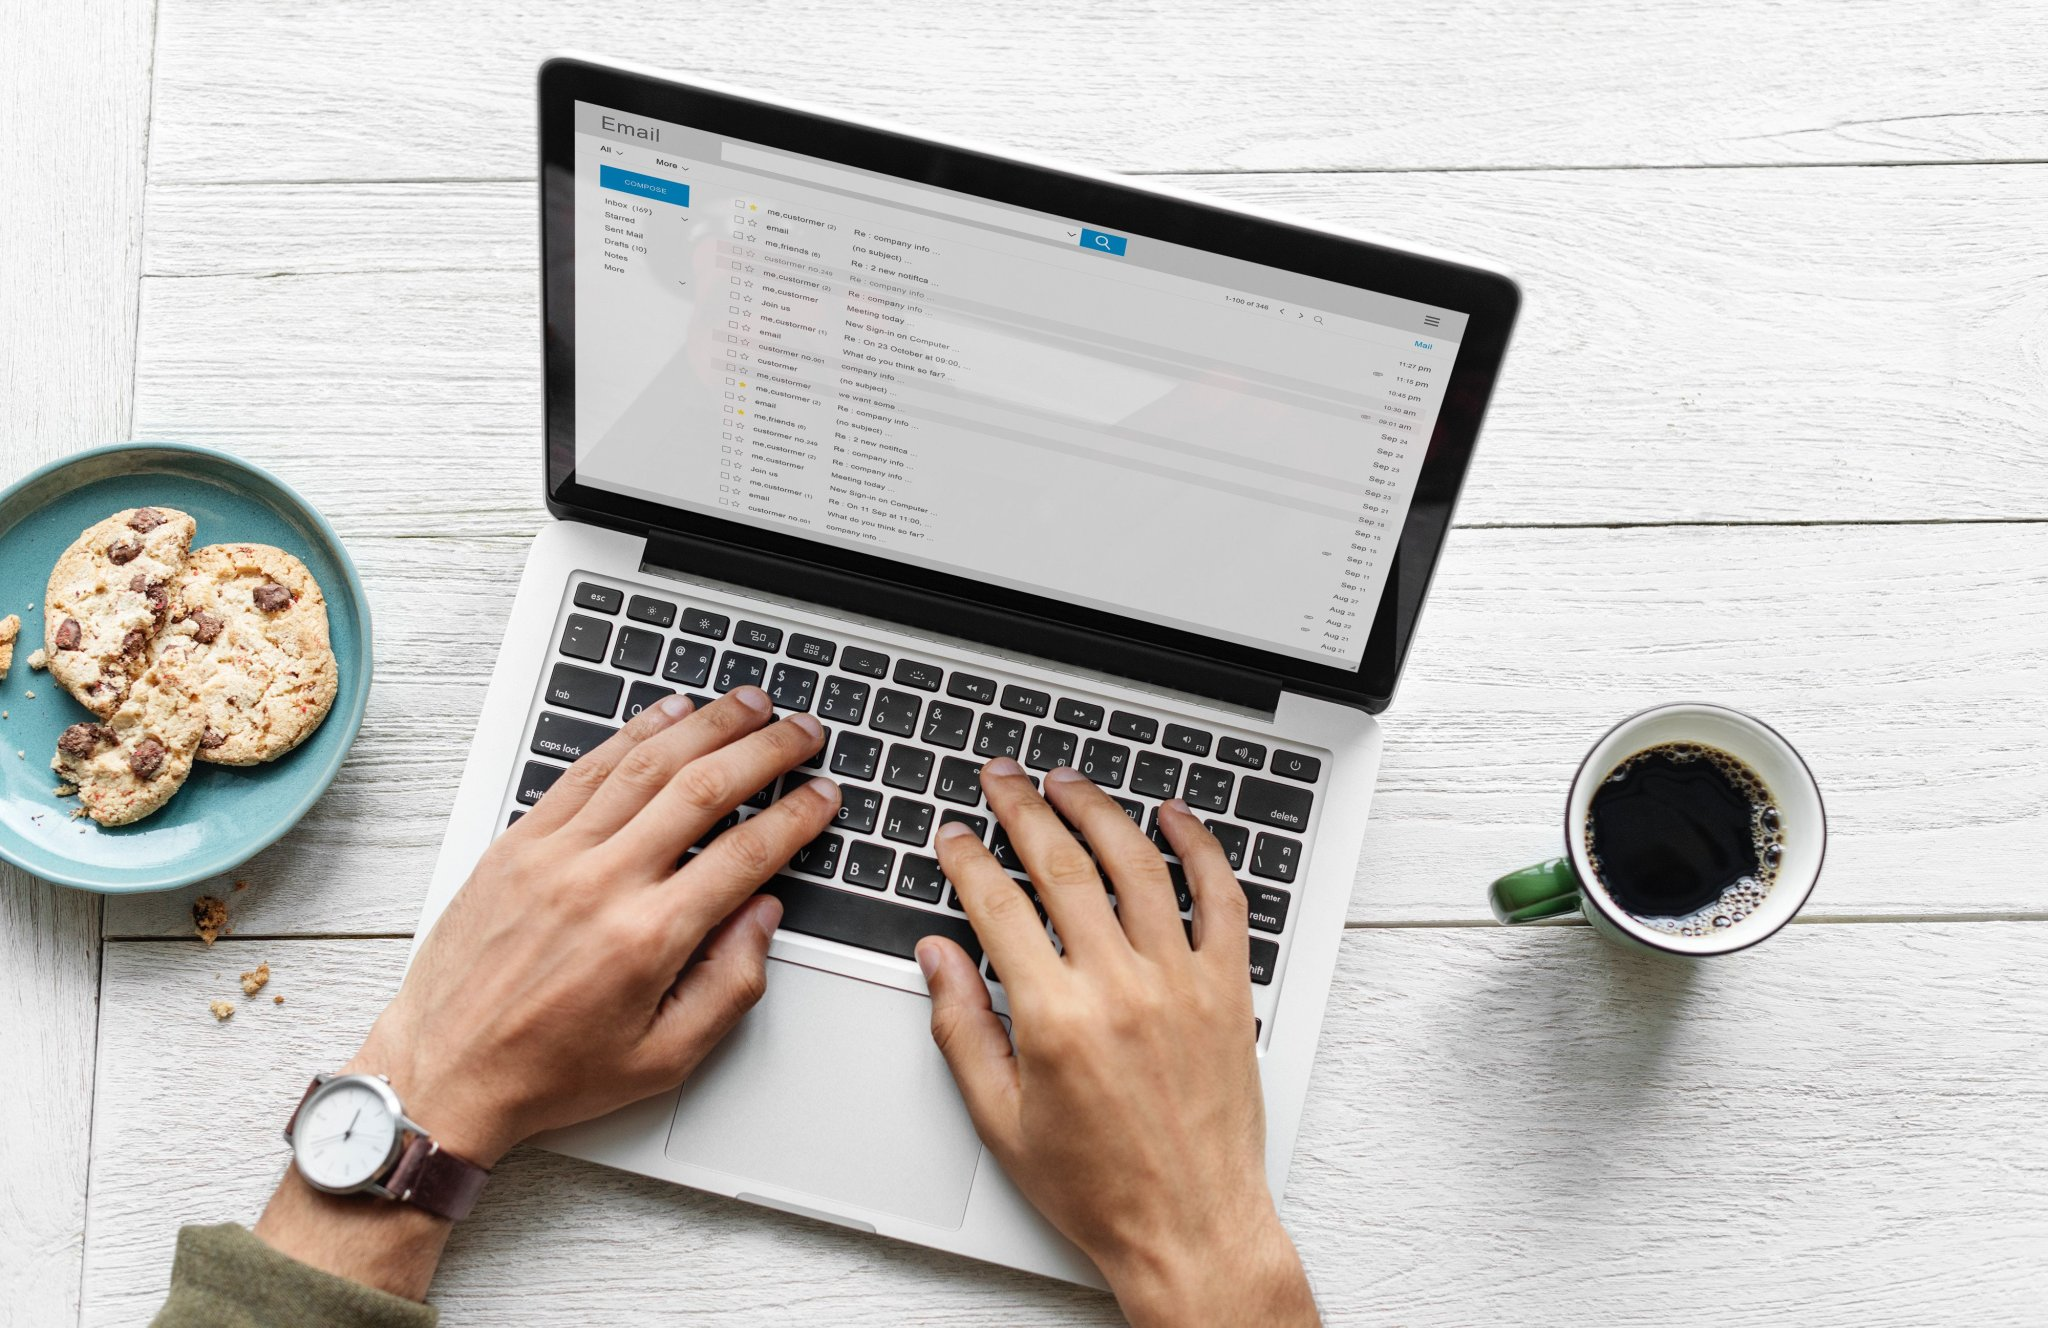 How to Get a Free Email Account for Email Anonymity